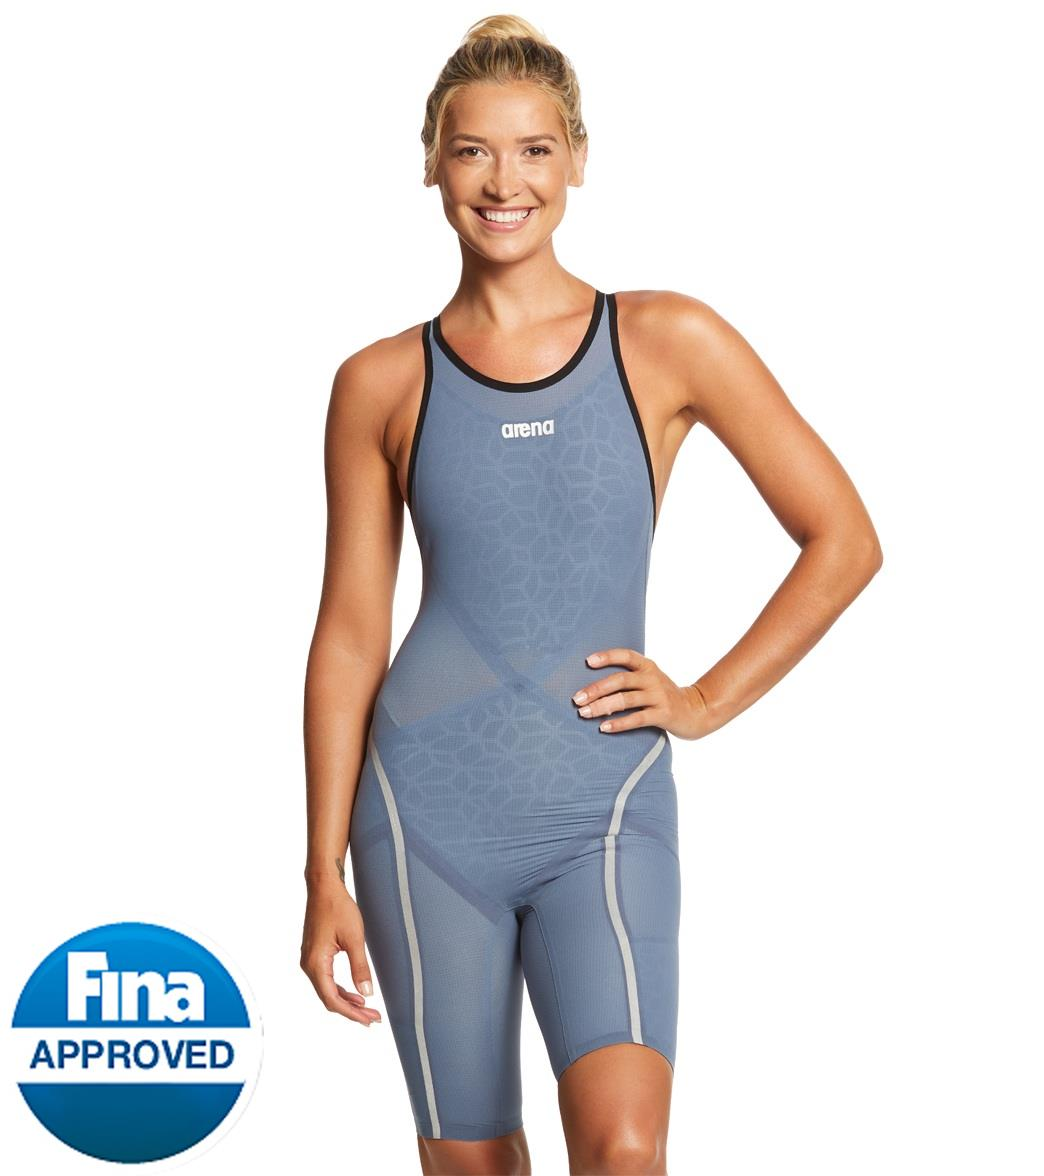 c81c9f2ed2 Arena Powerskin Carbon Ultra Closed Back Tech Suit Swimsuit at  SwimOutlet.com - Free Shipping